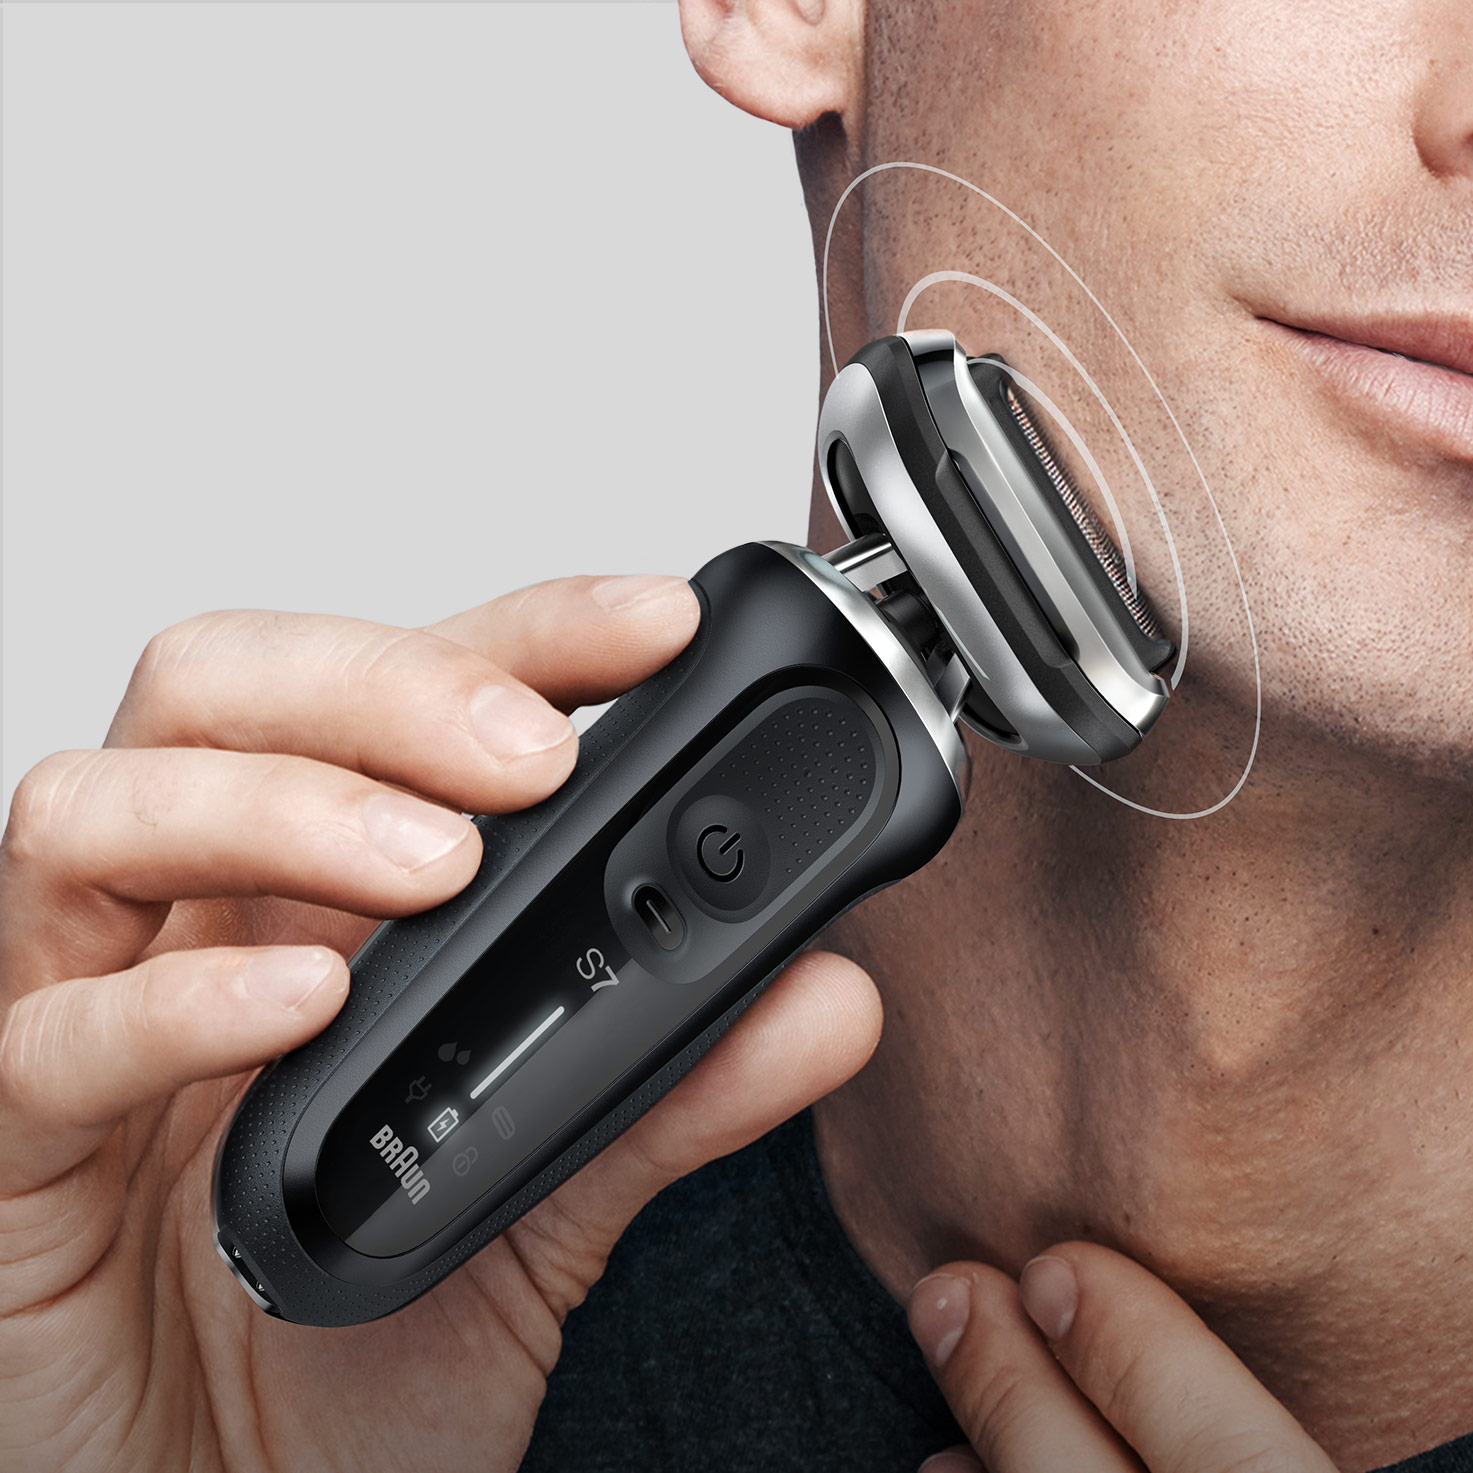 A clean shave, even in tricky areas